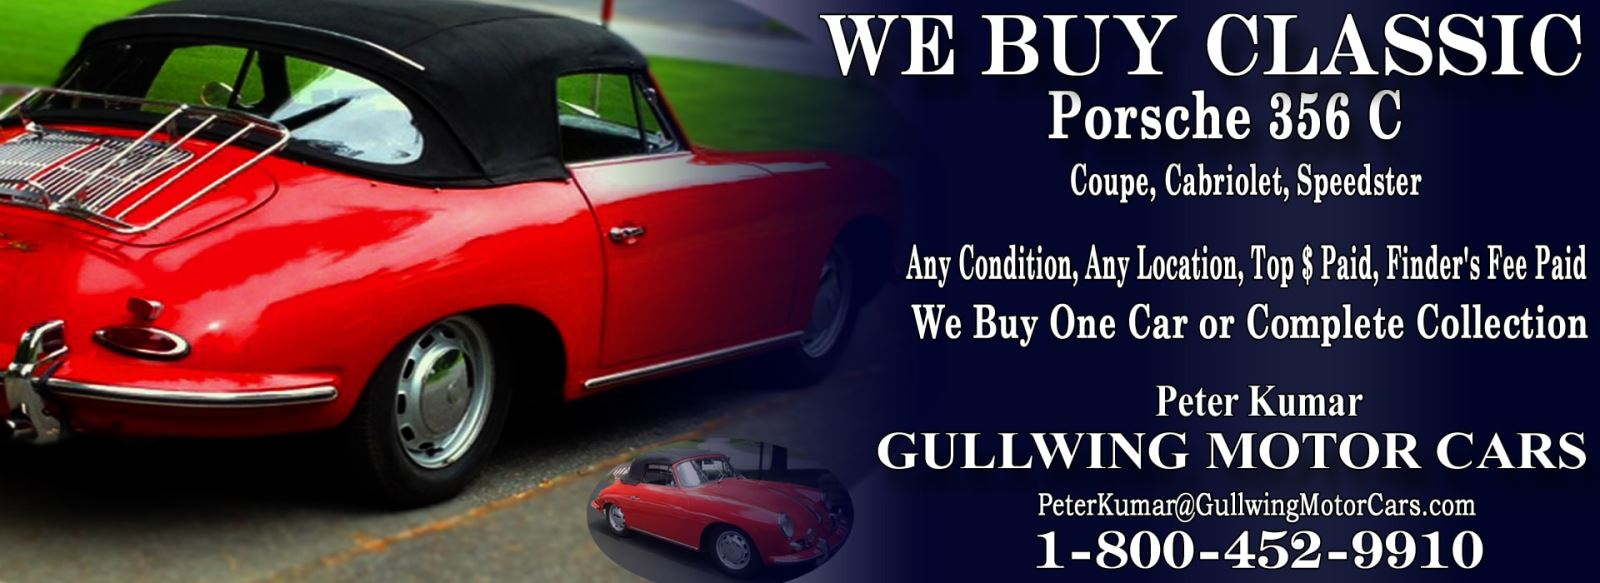 Classic Porsche 356 C  for sale, we buy vintage Porsche 356 C. Call Peter Kumar. Gullwing Motor